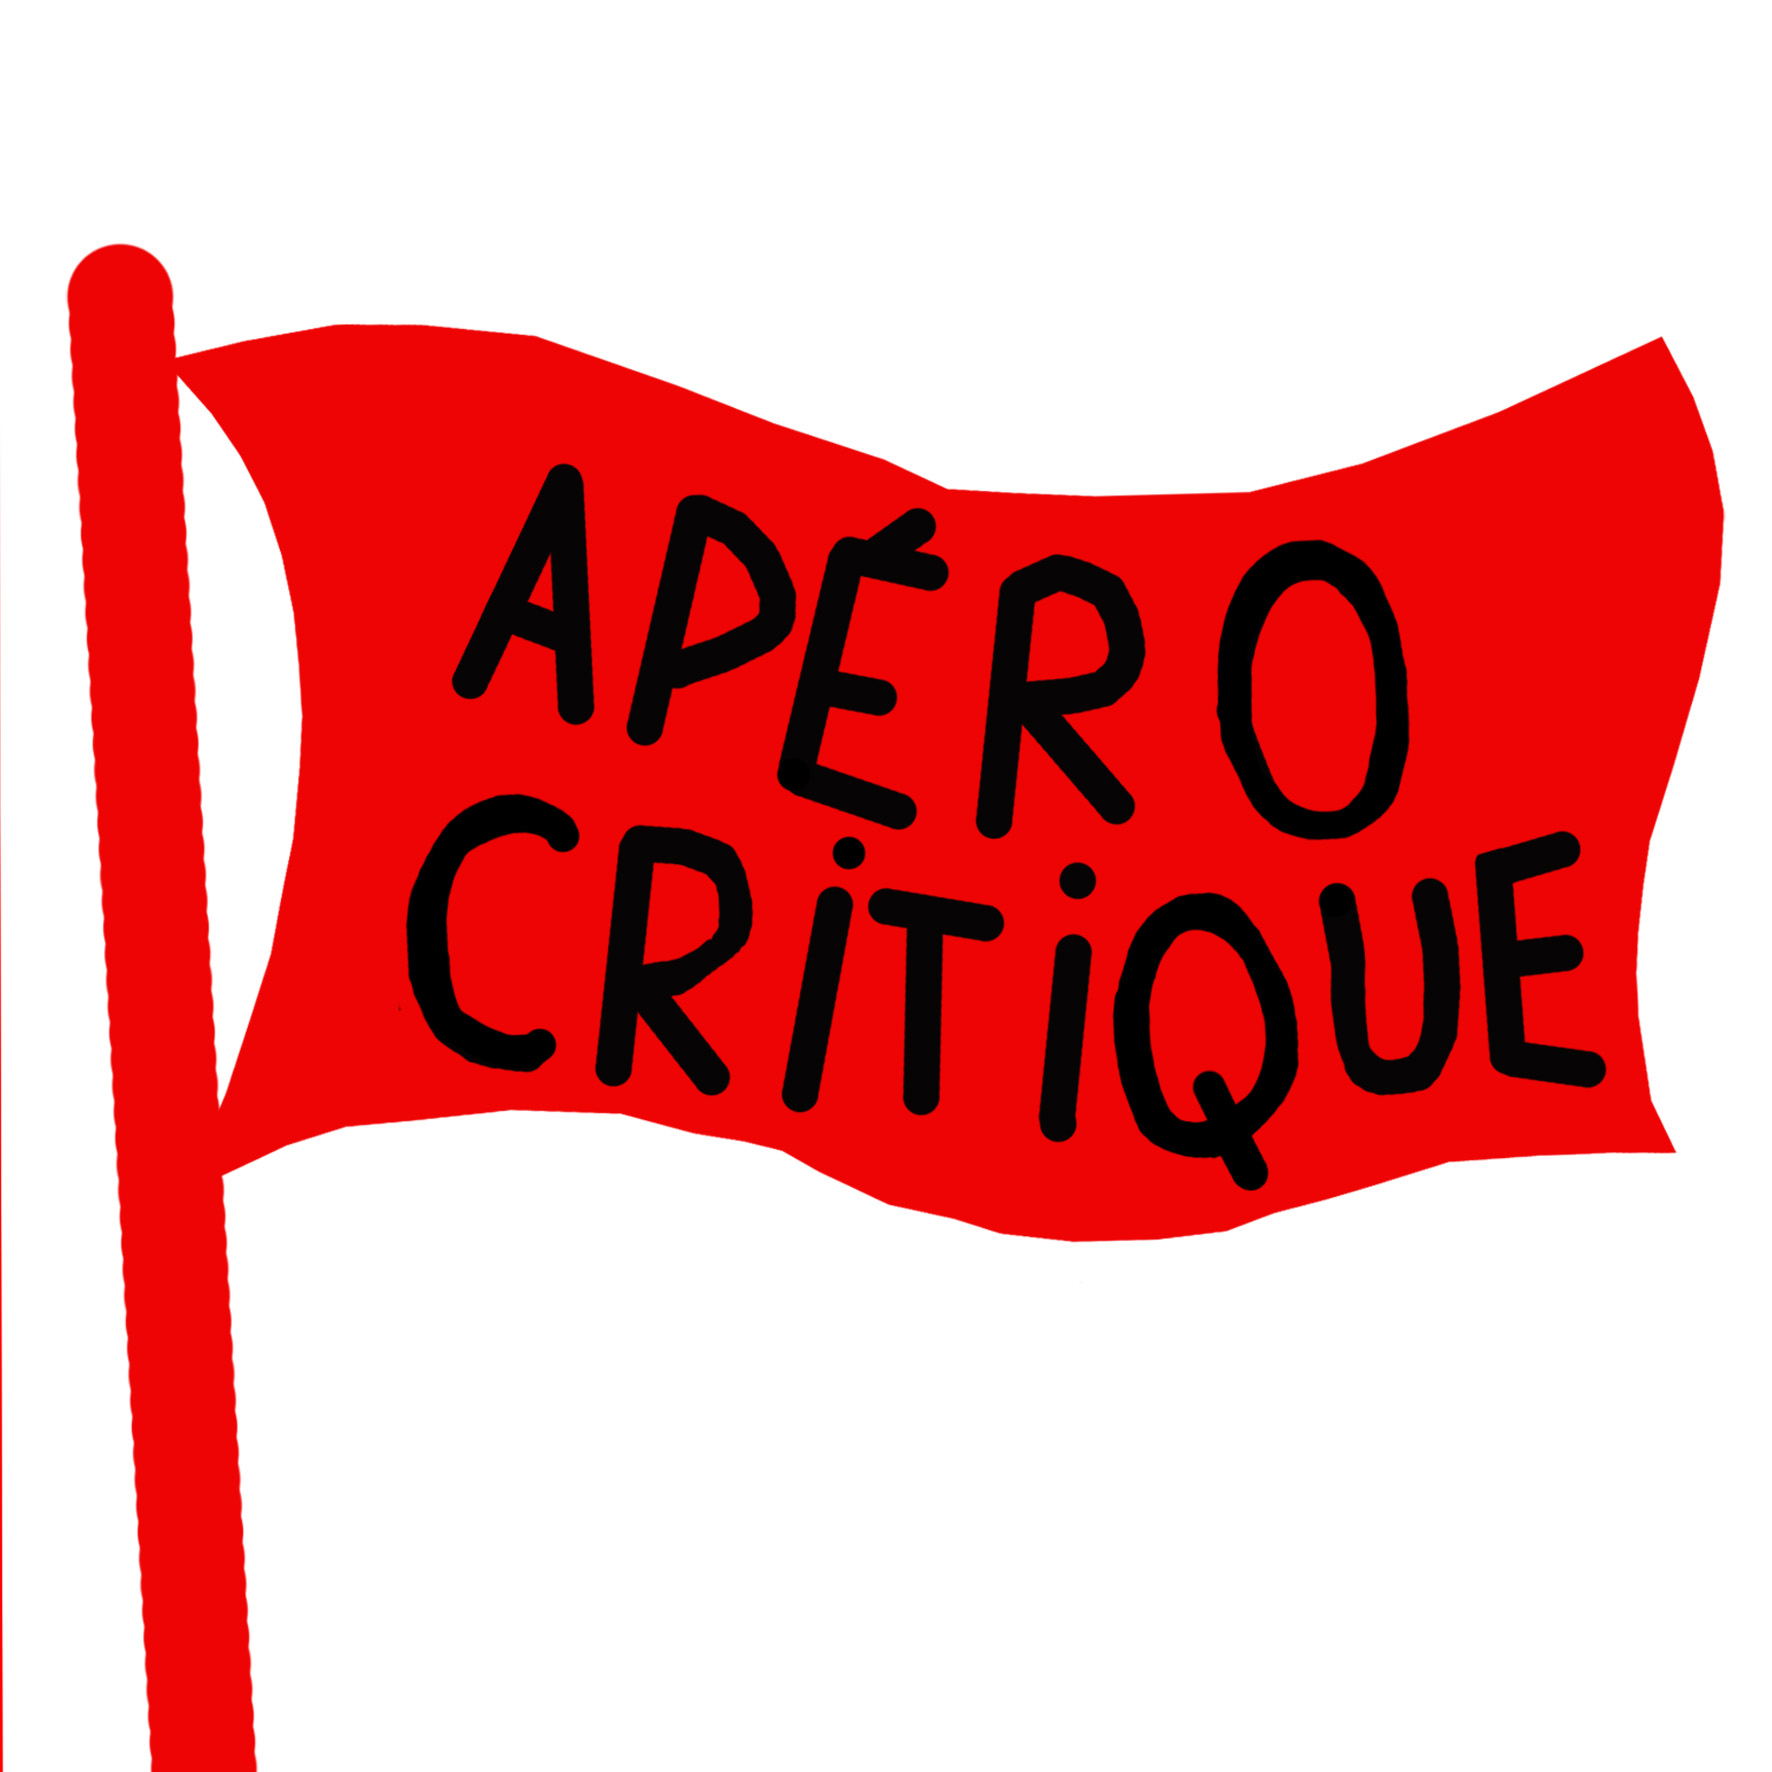 apero_critique_carre_newsletter